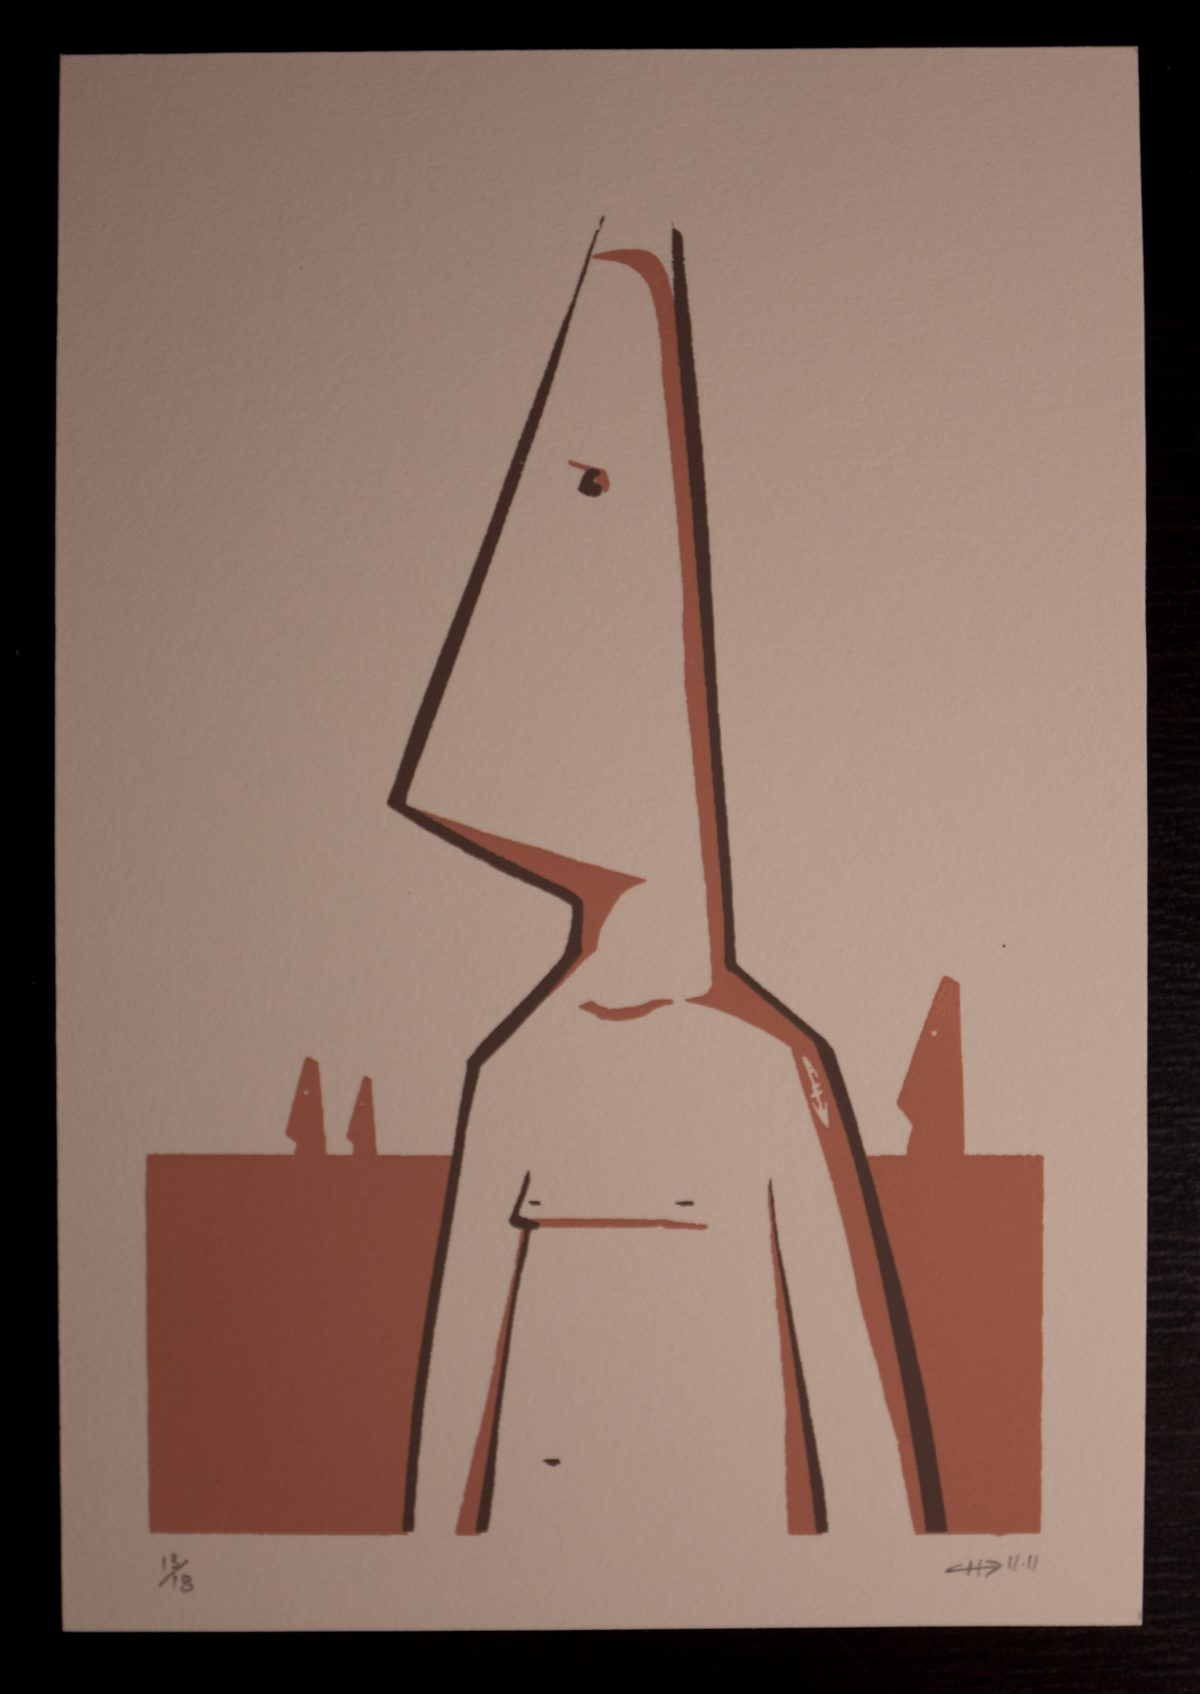 Coneman - 13x19cm silk screen print. 18 copies on warm white cardboard, silkscreen, ch3, cardboard